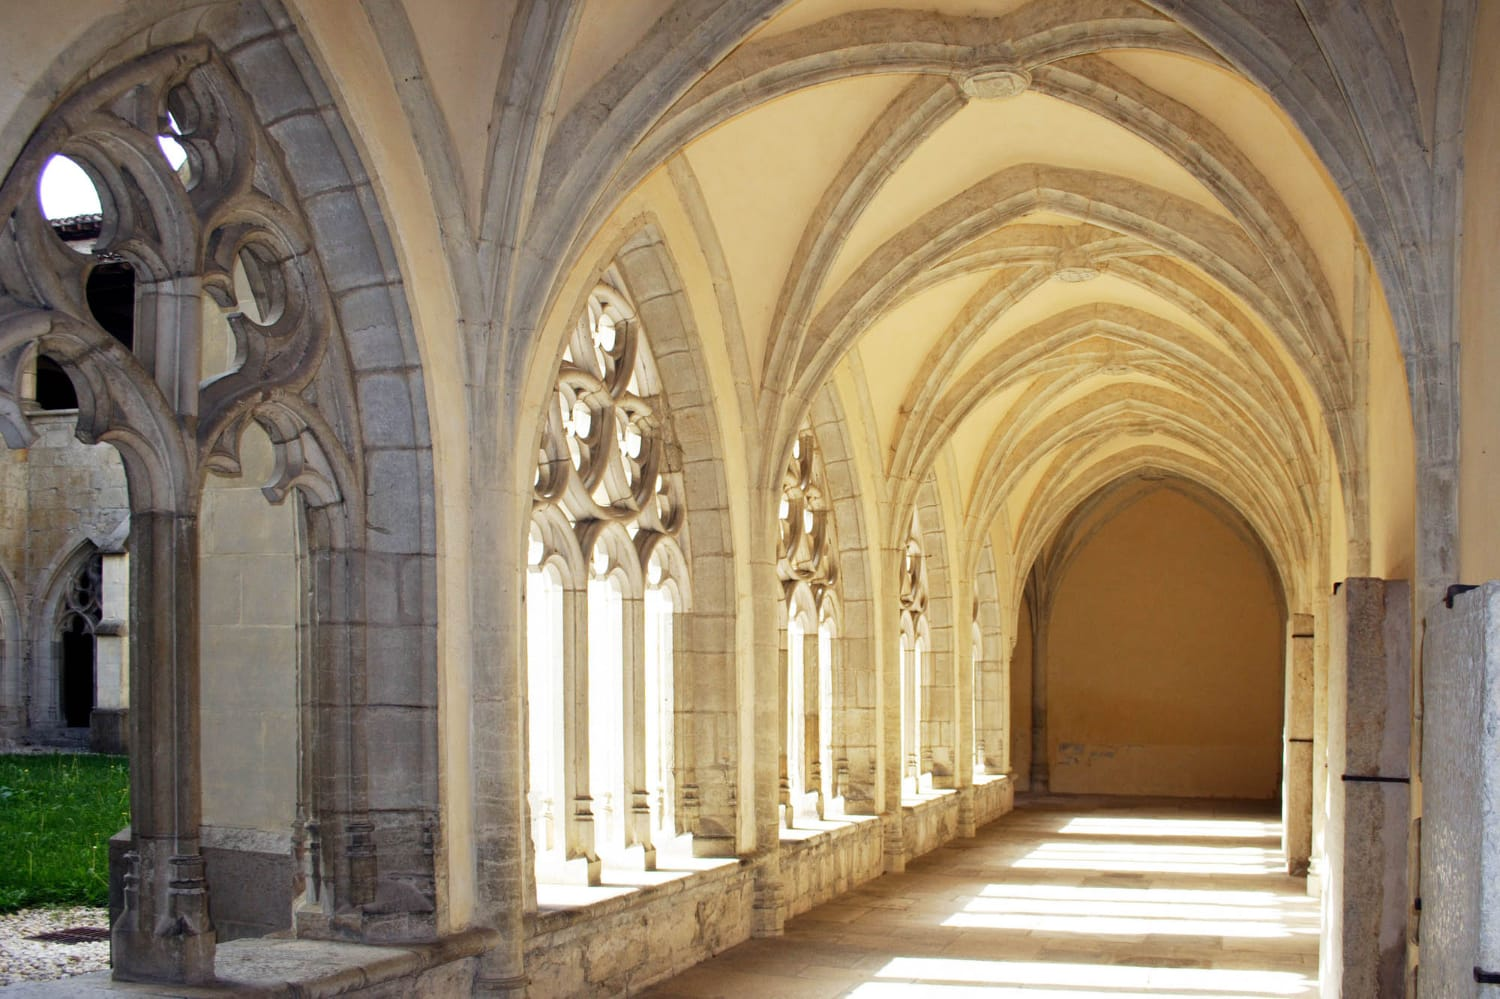 Ambronay Abbey in France